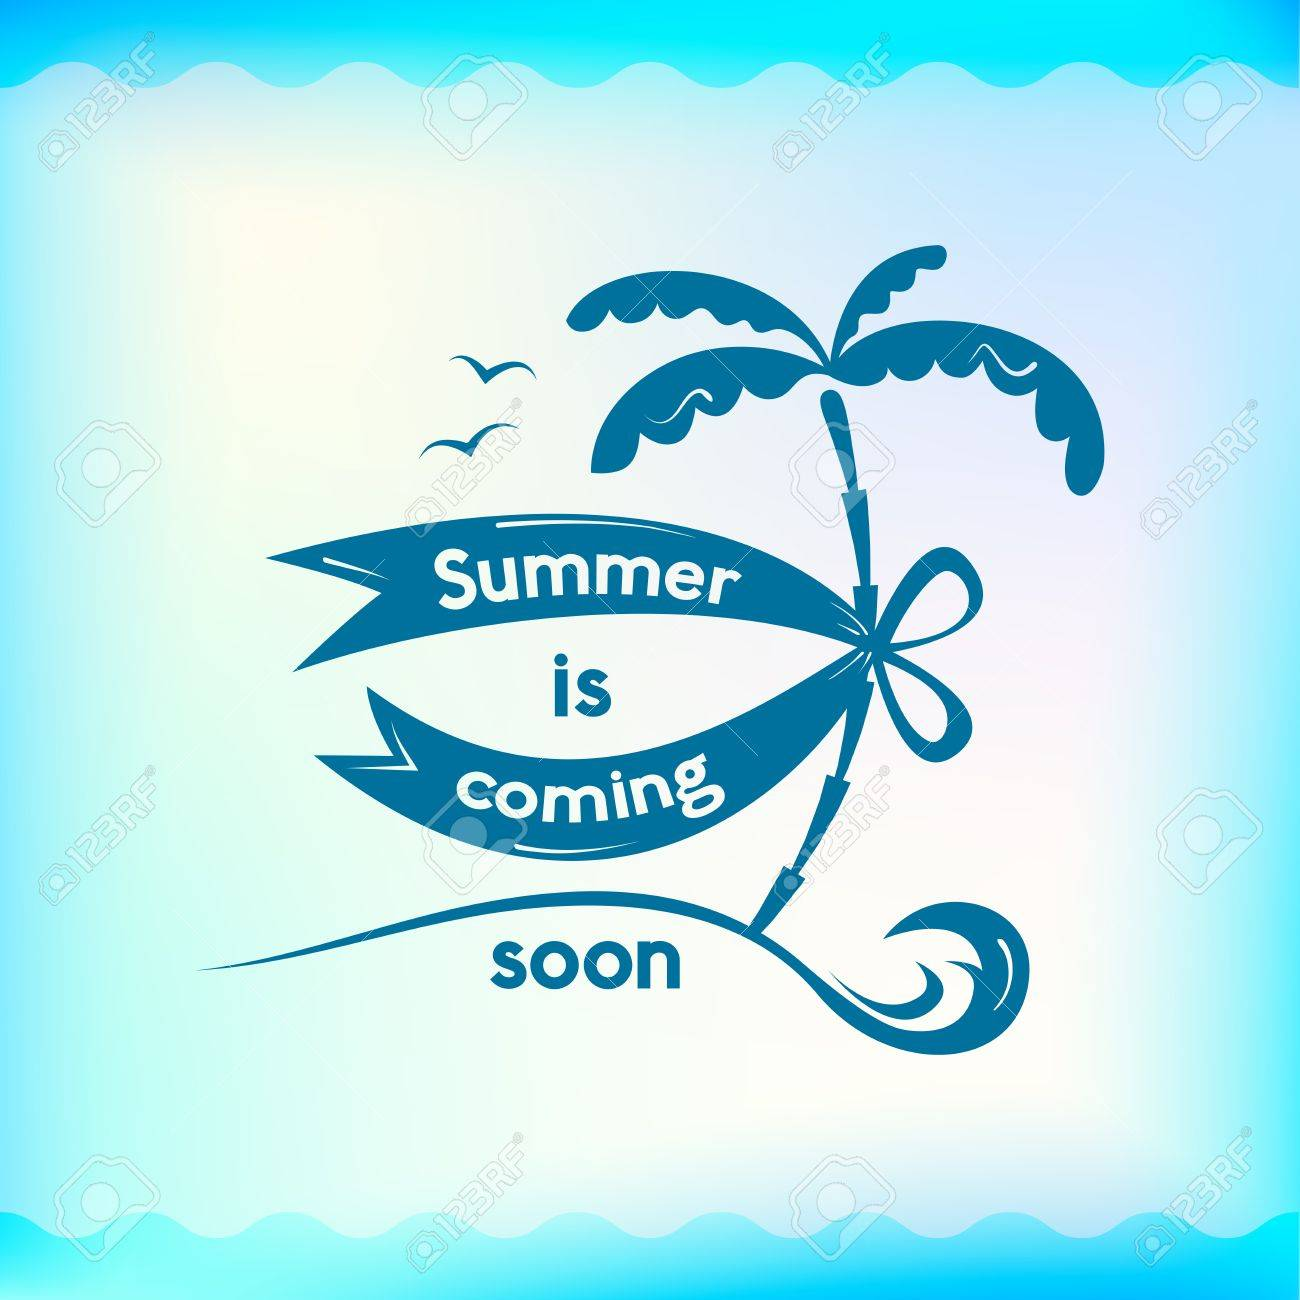 Summer Sign, Summer Is Coming Soon, Retro Typography, Sea And Beach On Water